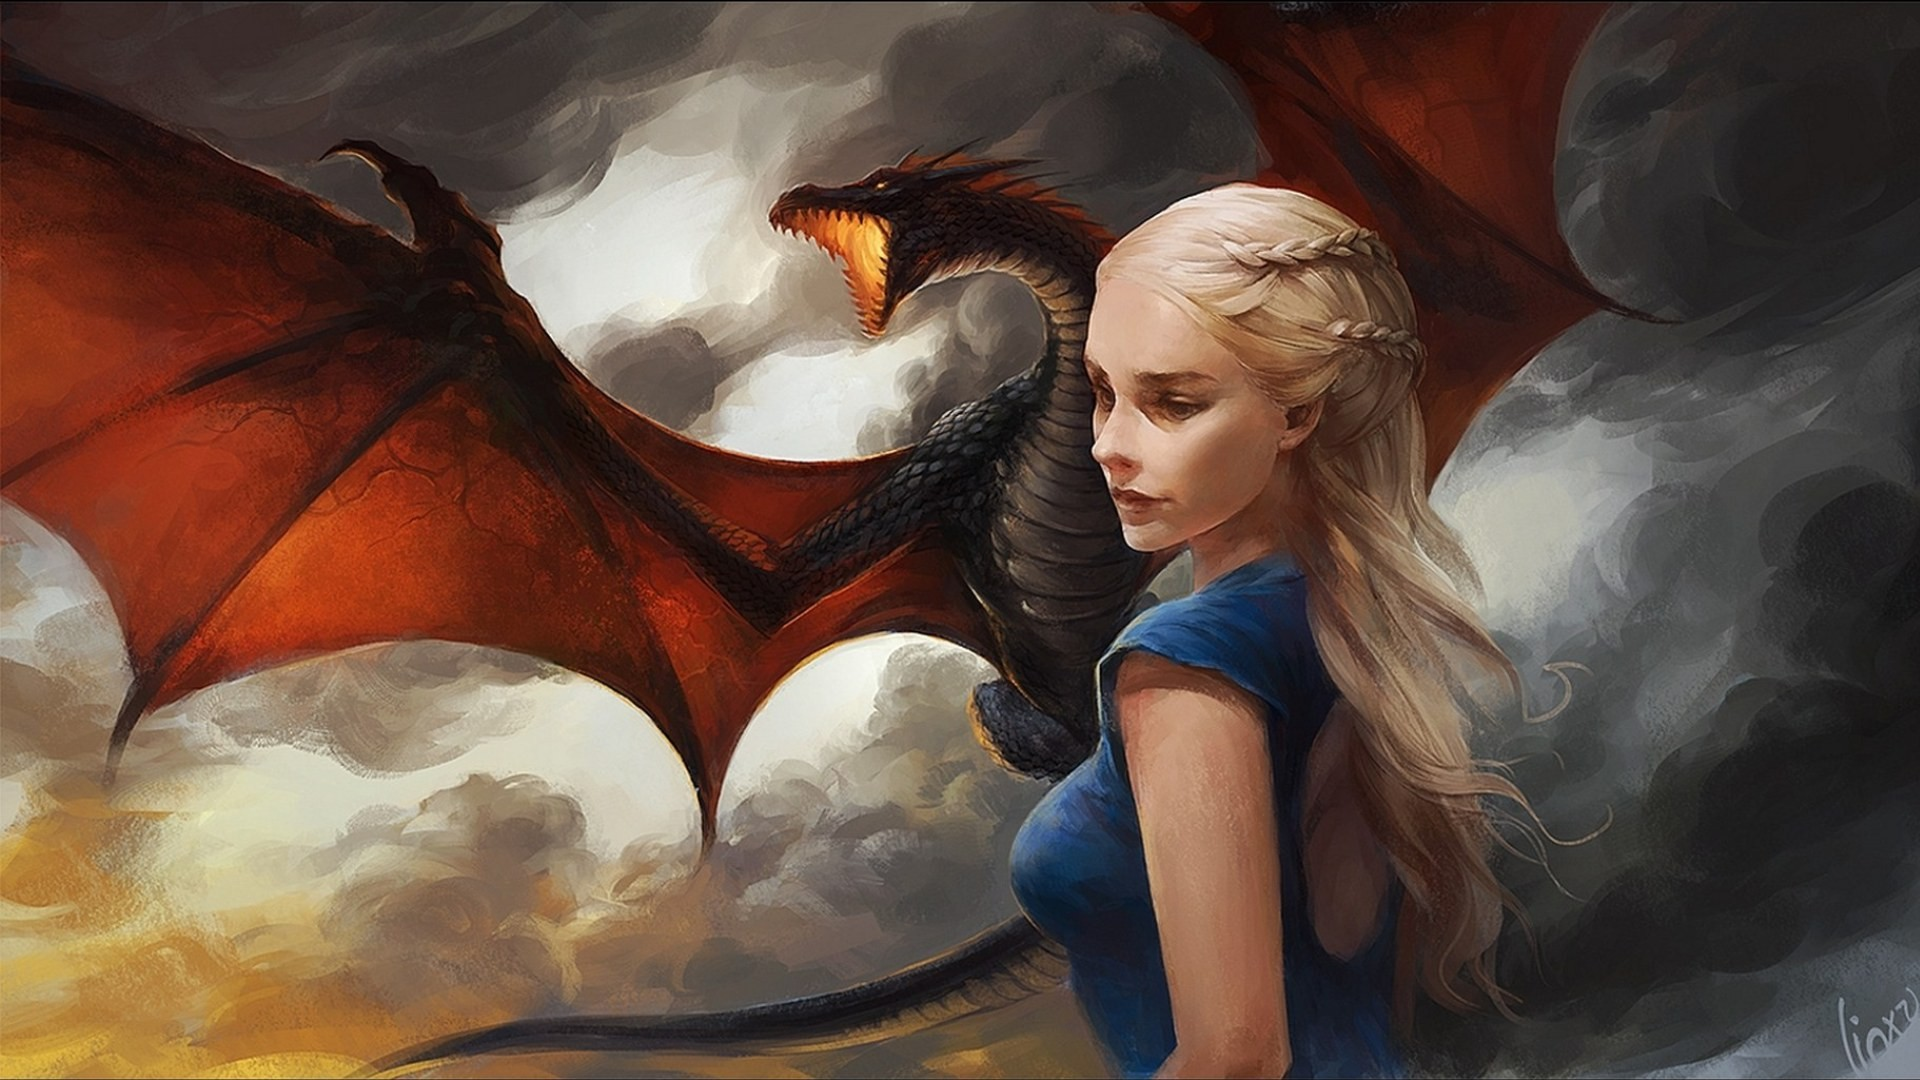 Khaleesi Game Of Thrones With Dragon Artwork, HD Tv Shows